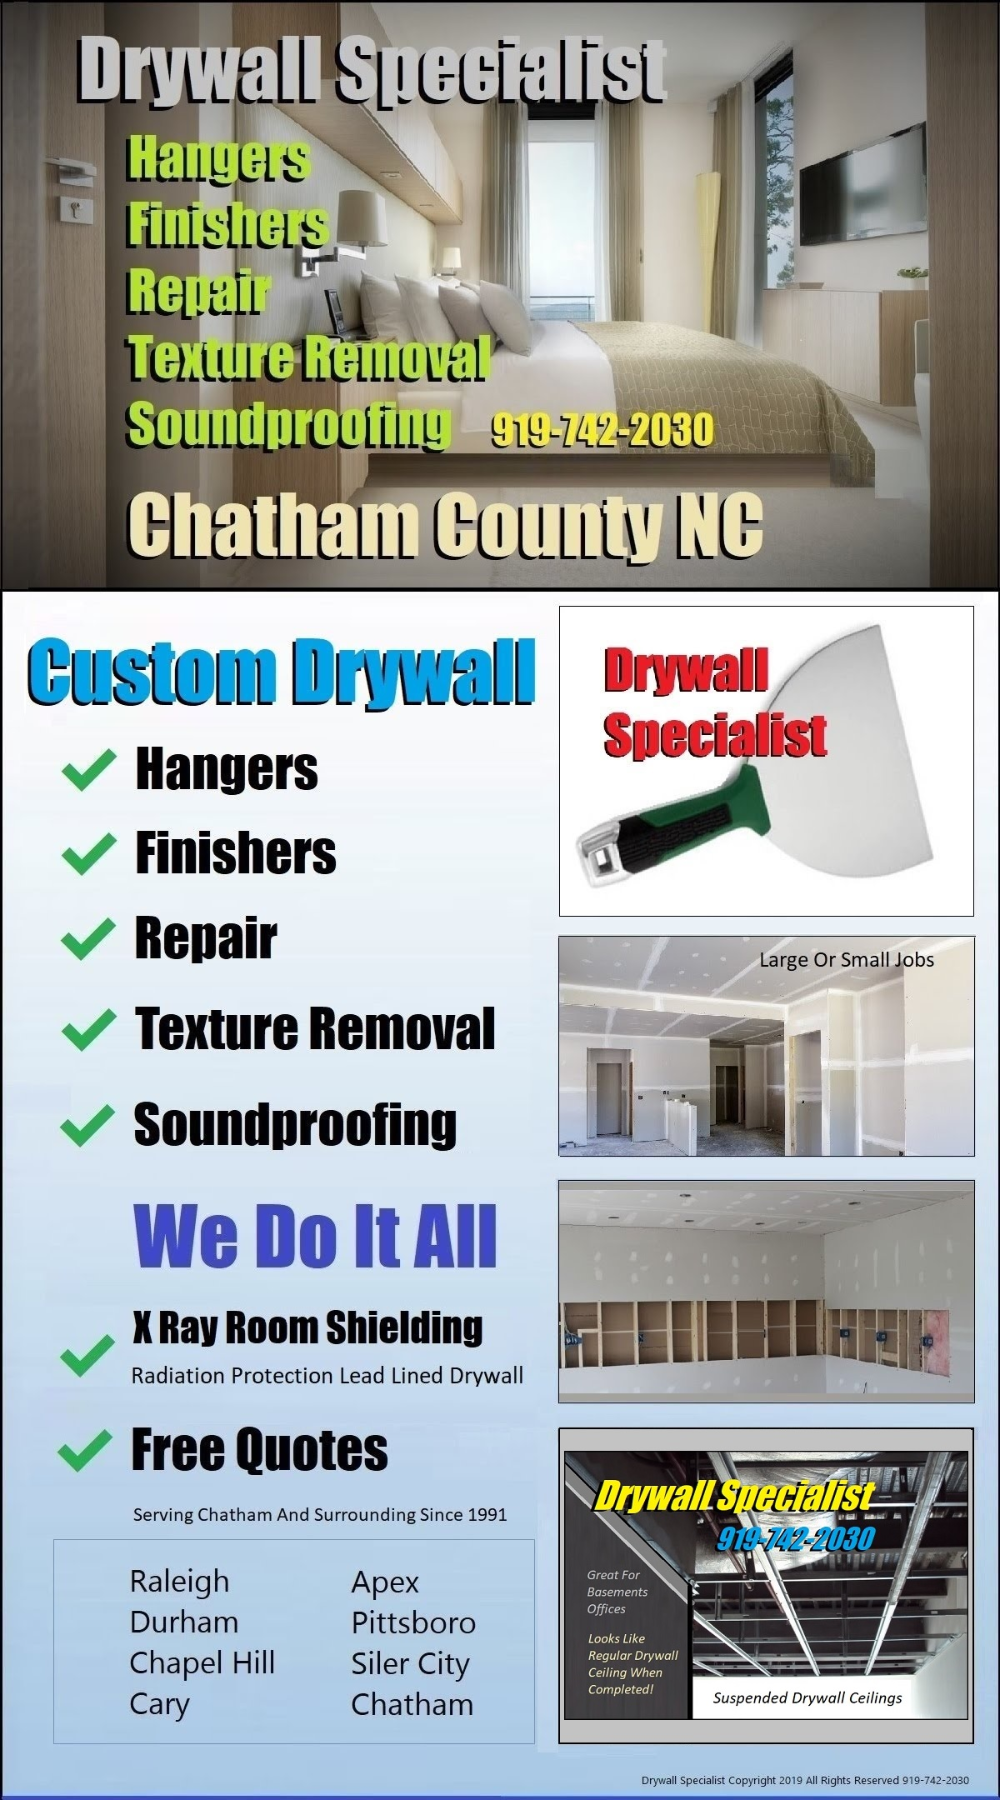 Suspended Drywall Basement Ceiling Systems Raleigh Call Drywall Specialist For A Free Cost Quote On Suspended Baseme Chatham County Drywall Repair Pittsboro